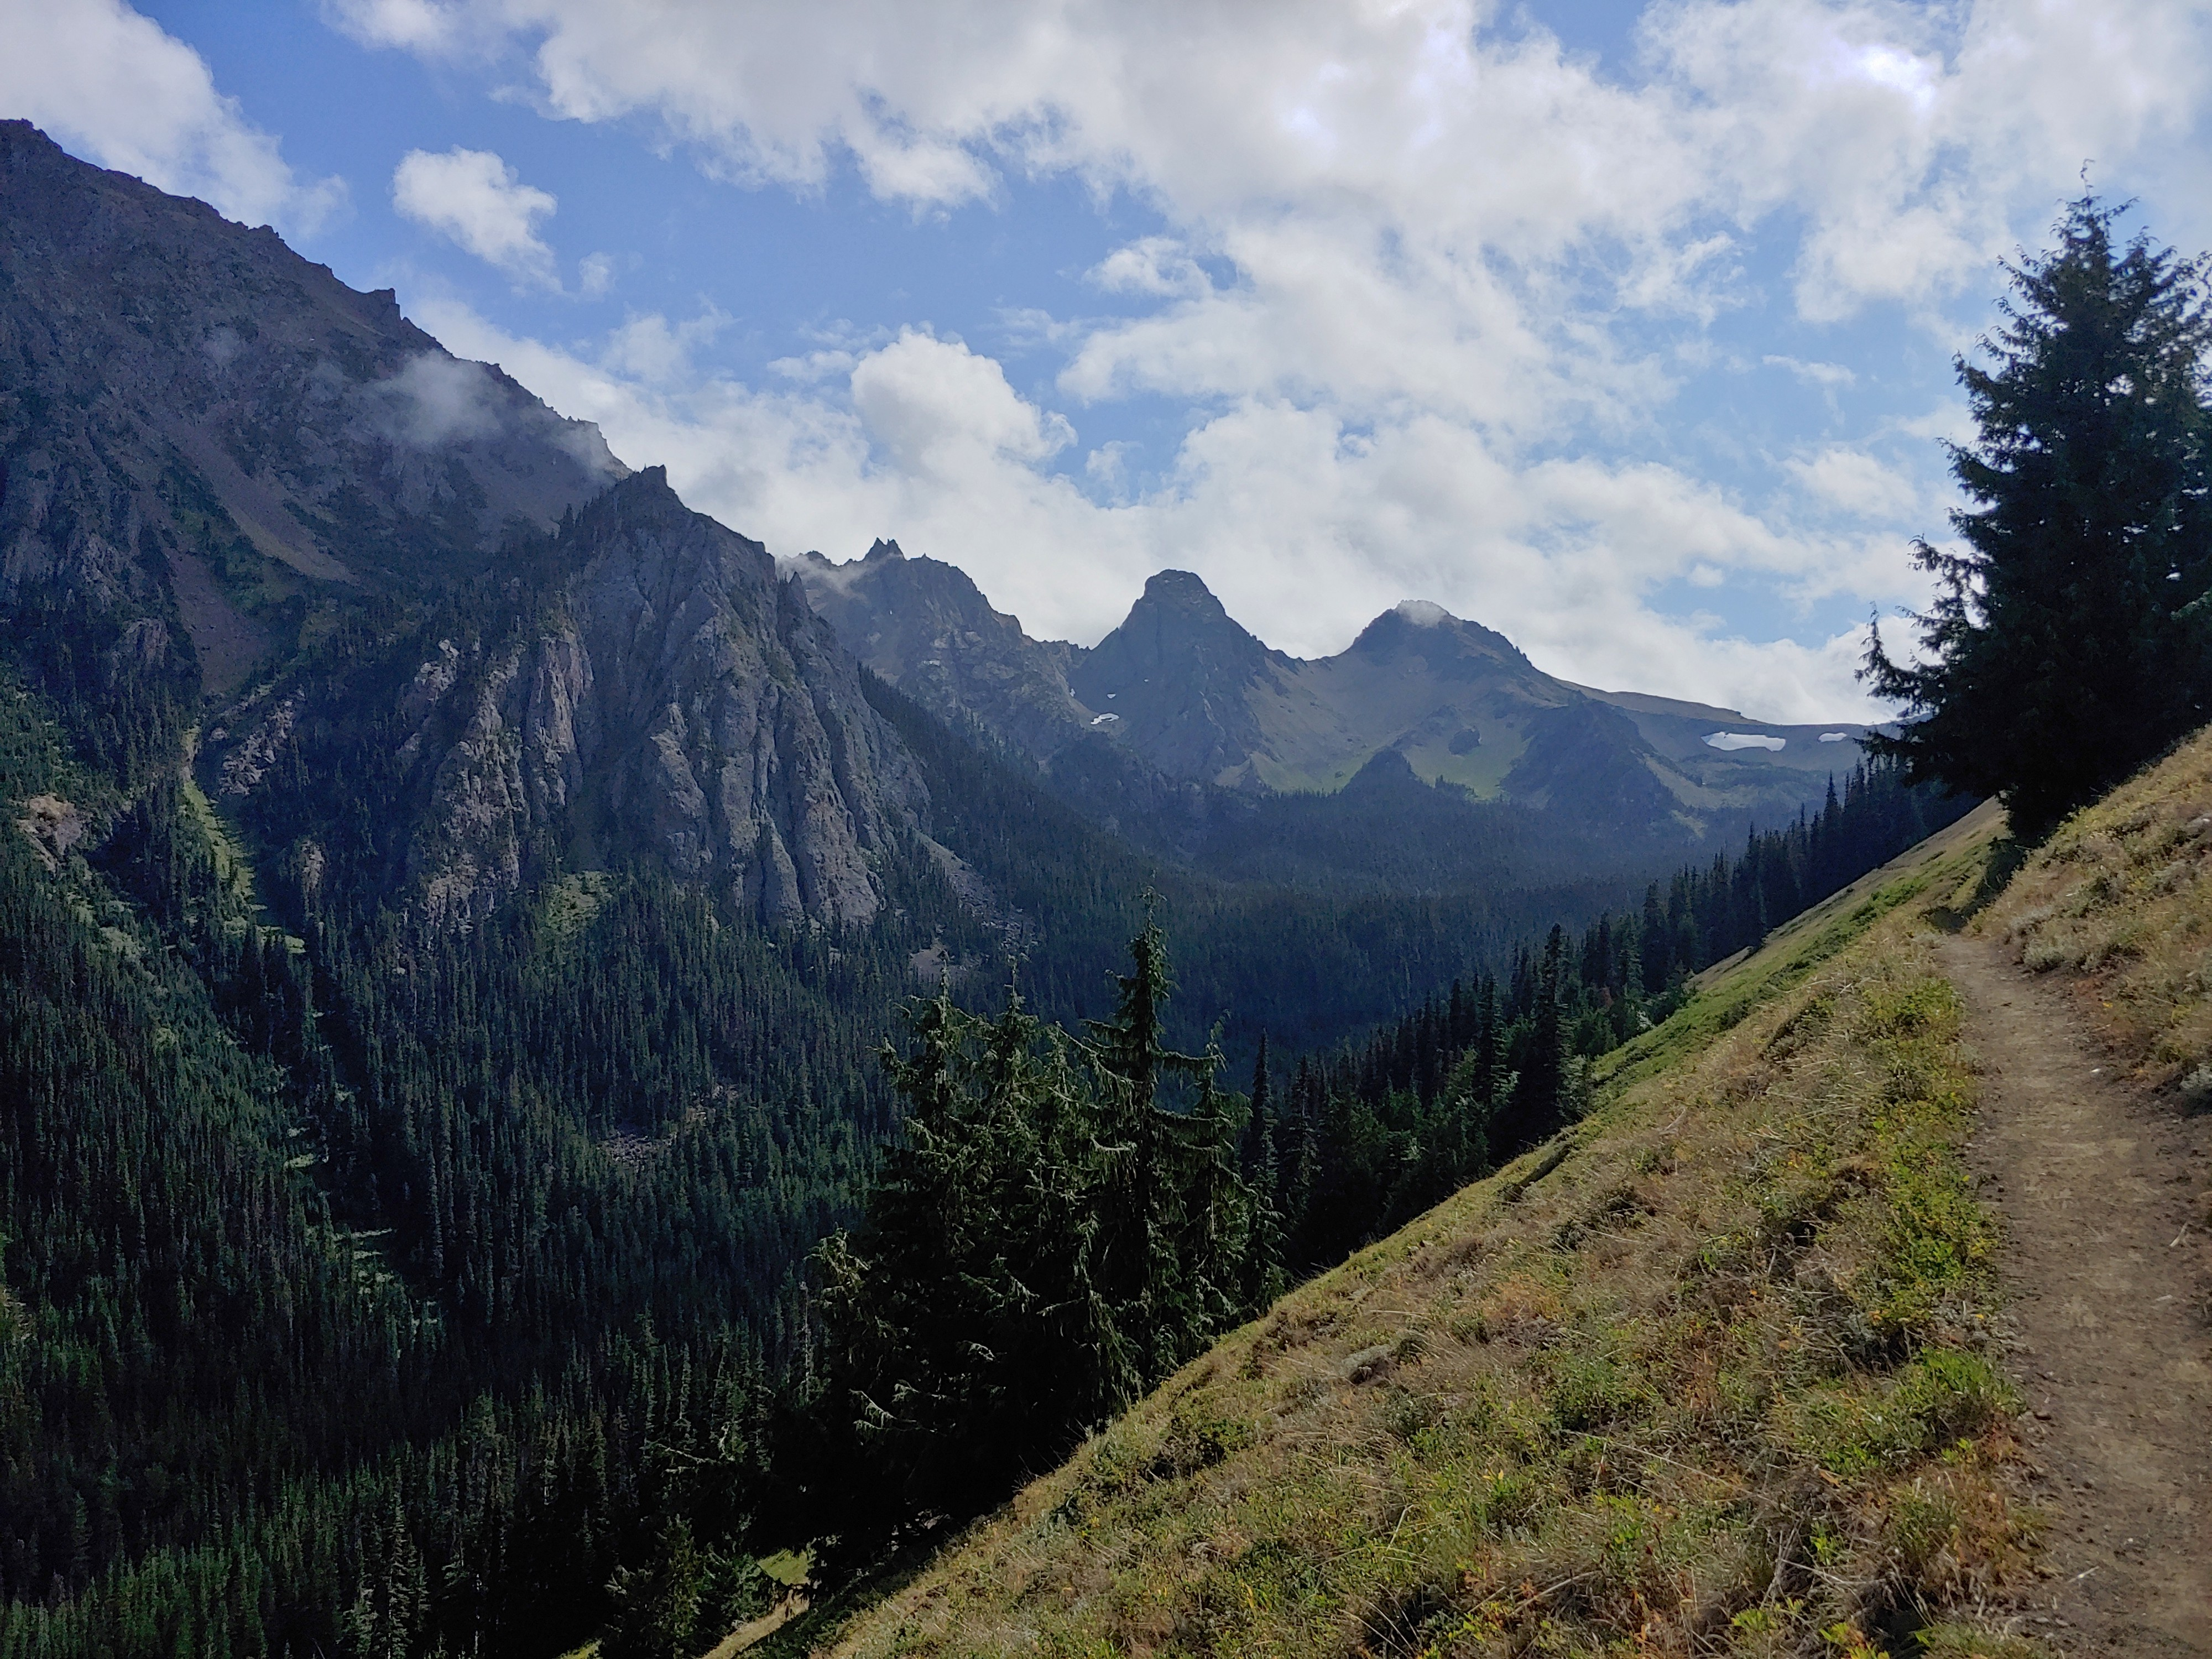 Expansive views of mountain peaks and forest stretch out from the Tubal Cain Trail in Olympic National Forest.